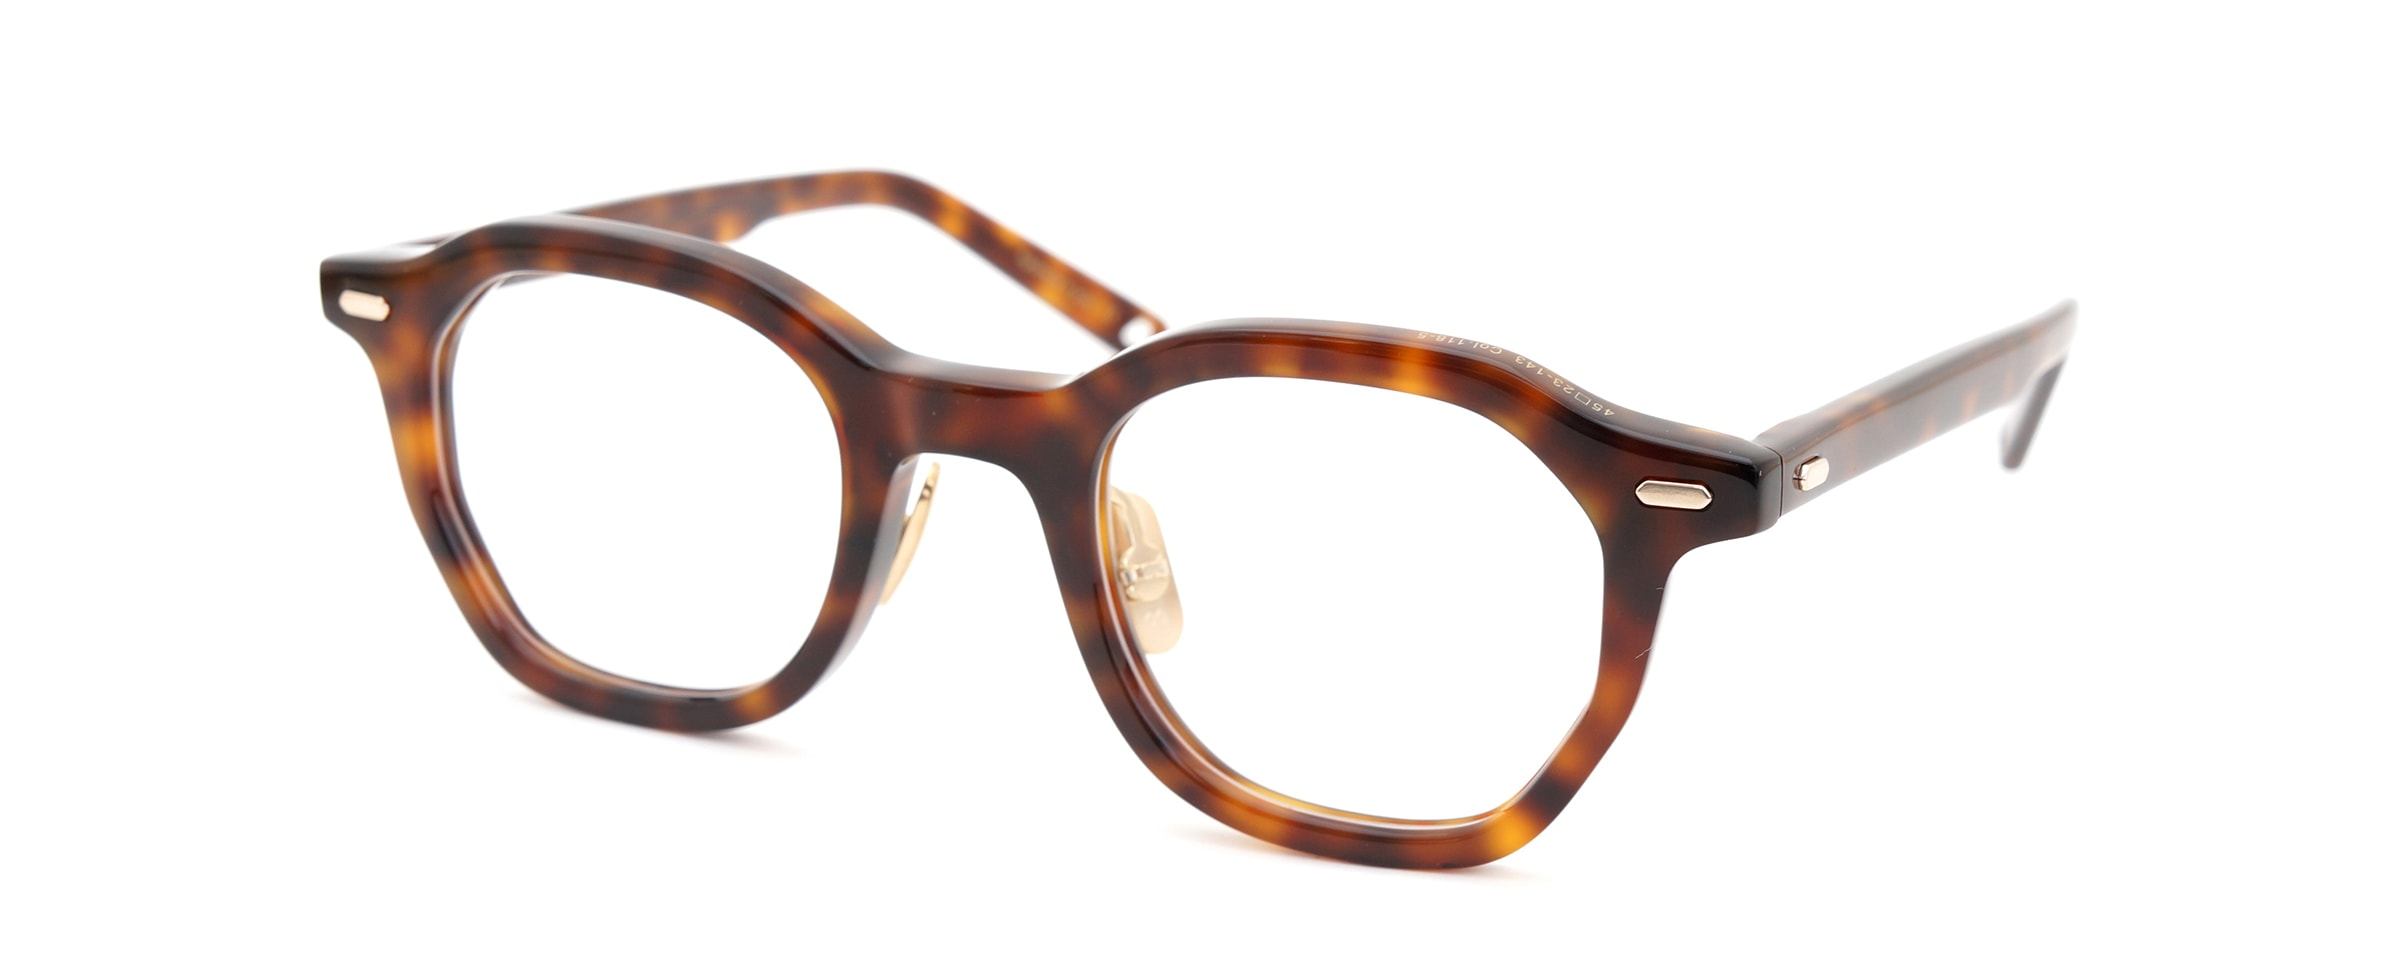 OG × OLIVER GOLDSMITH Re:BETSY 45 リ:ベッツィ